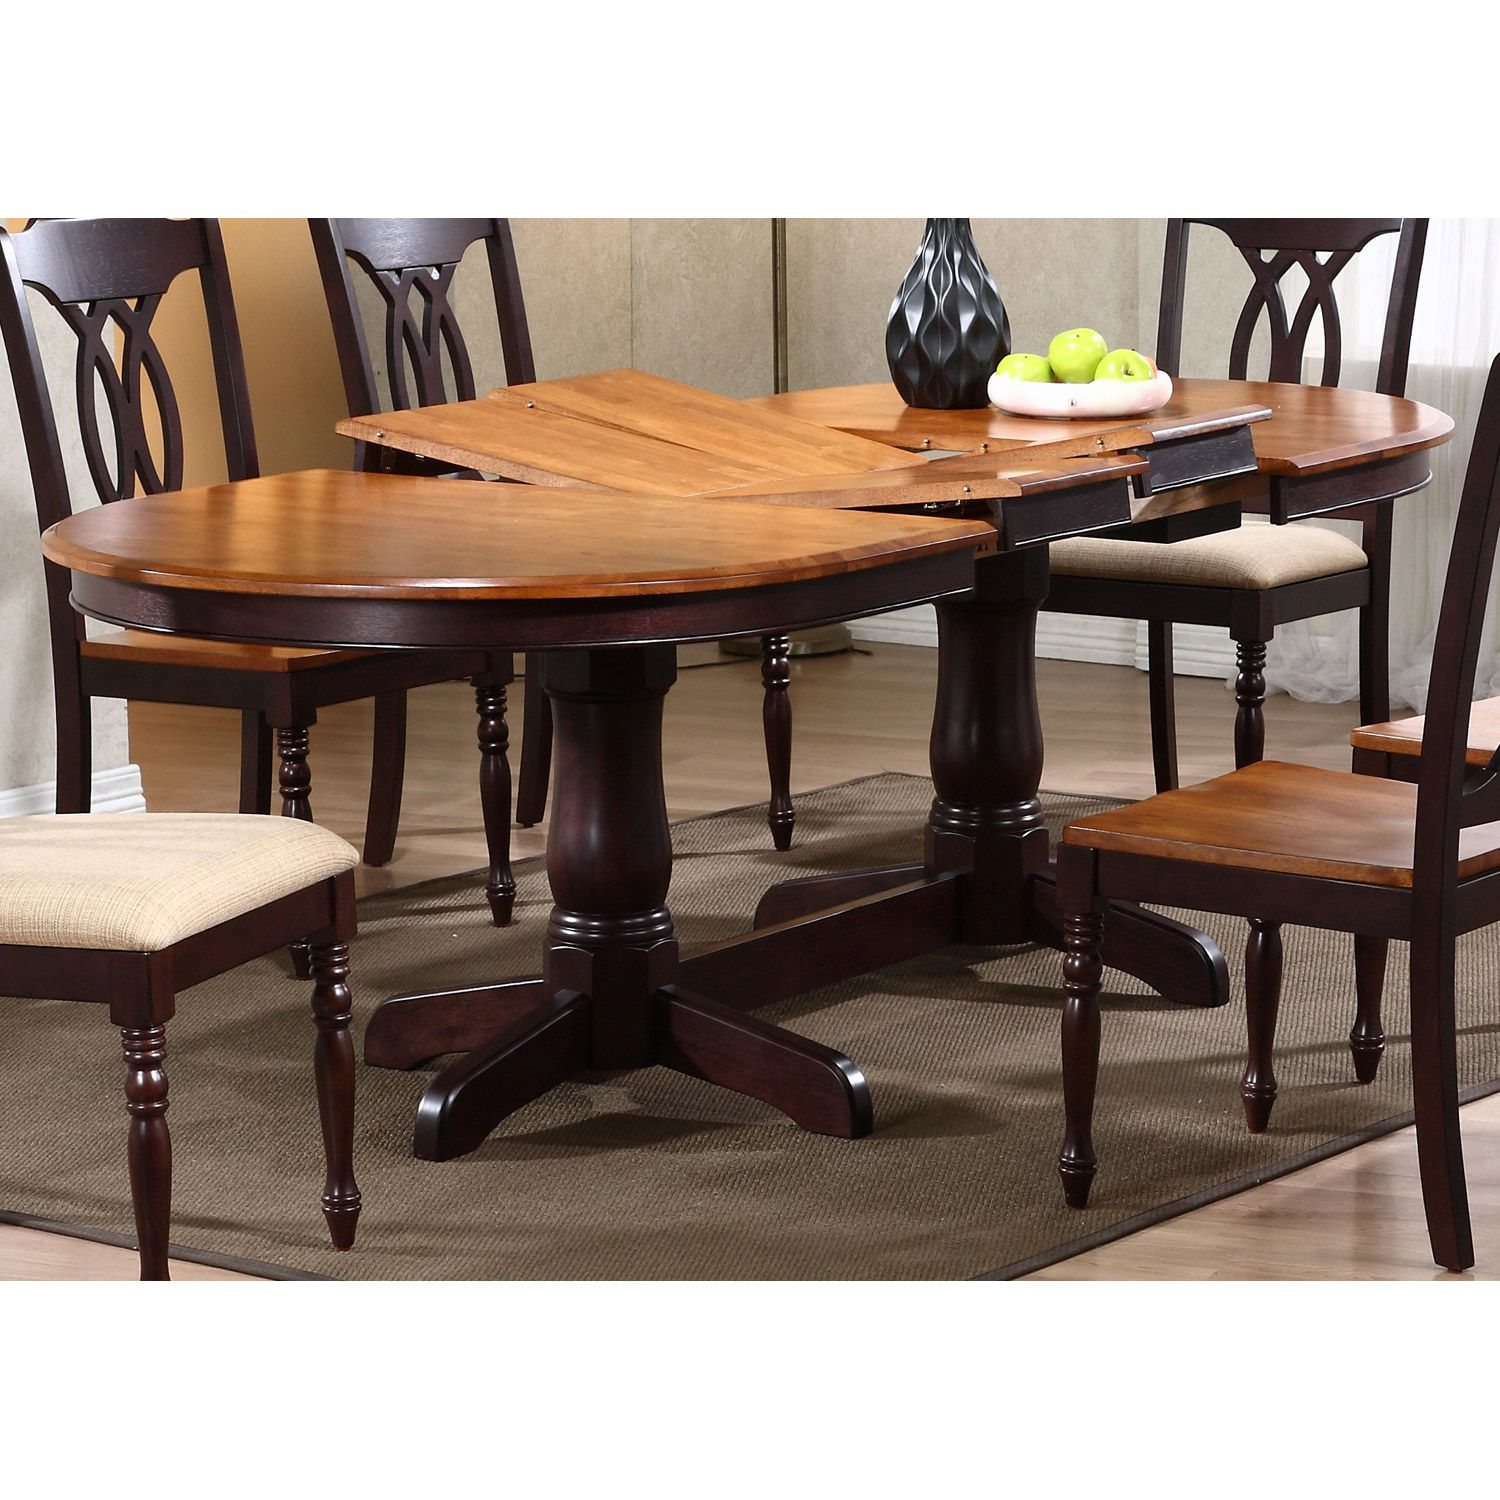 Gatsby Oval Dining Table Double Butterfly Leaf Whiskey Mocha Dining Table Extendable Dining Table Dining Table In Kitchen